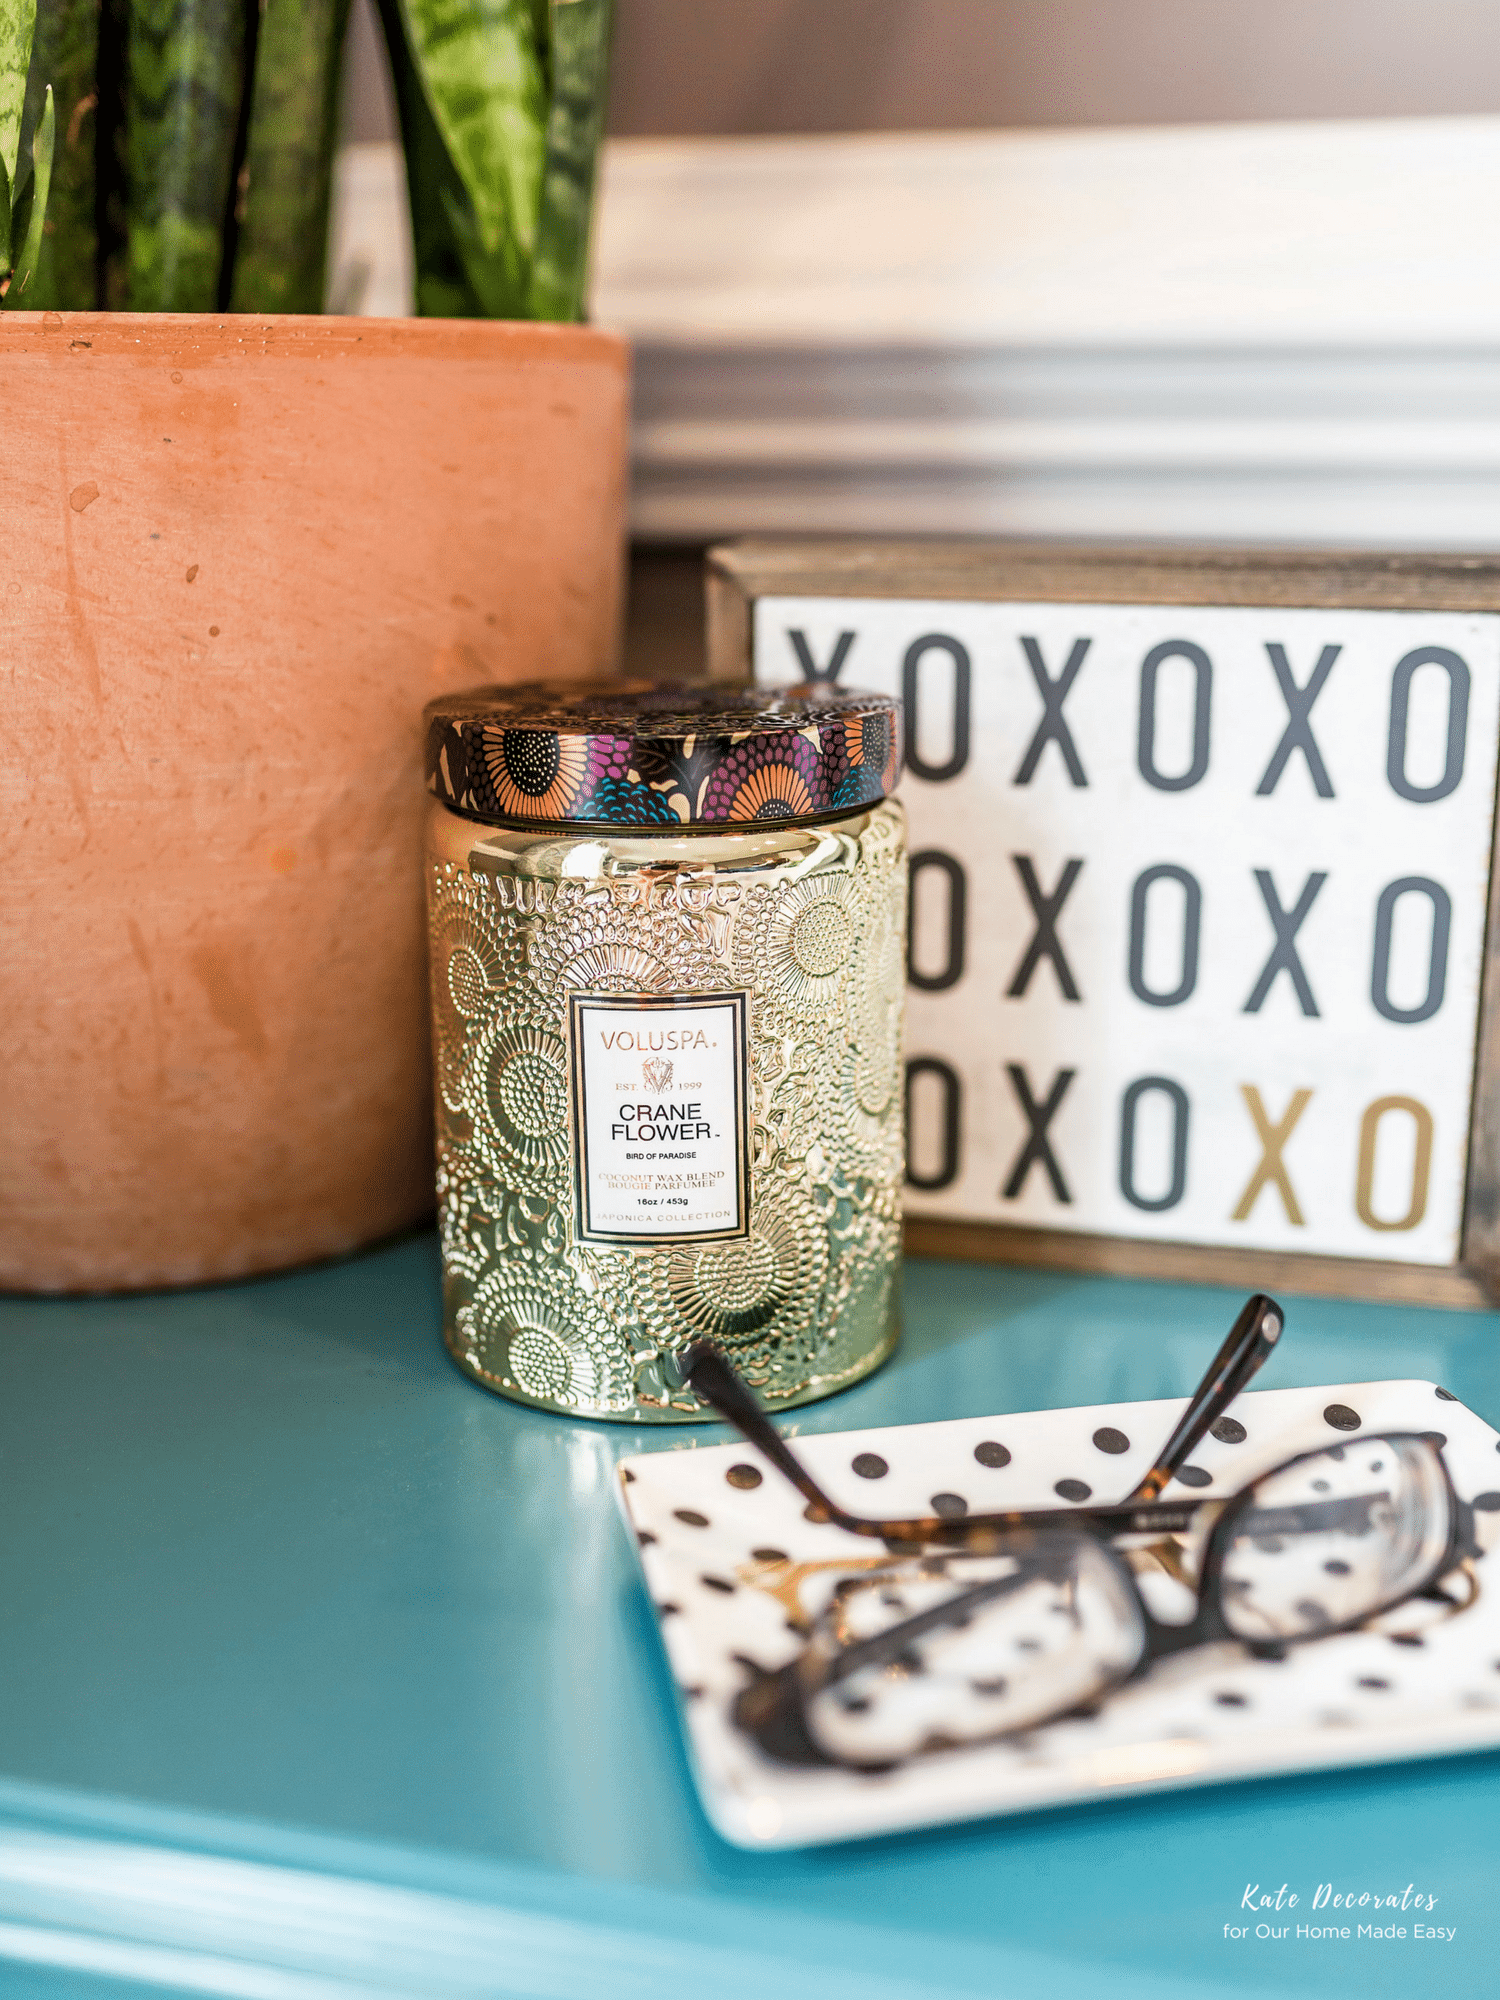 Decorative candles are a perfect way to spruce up your home for less than $10